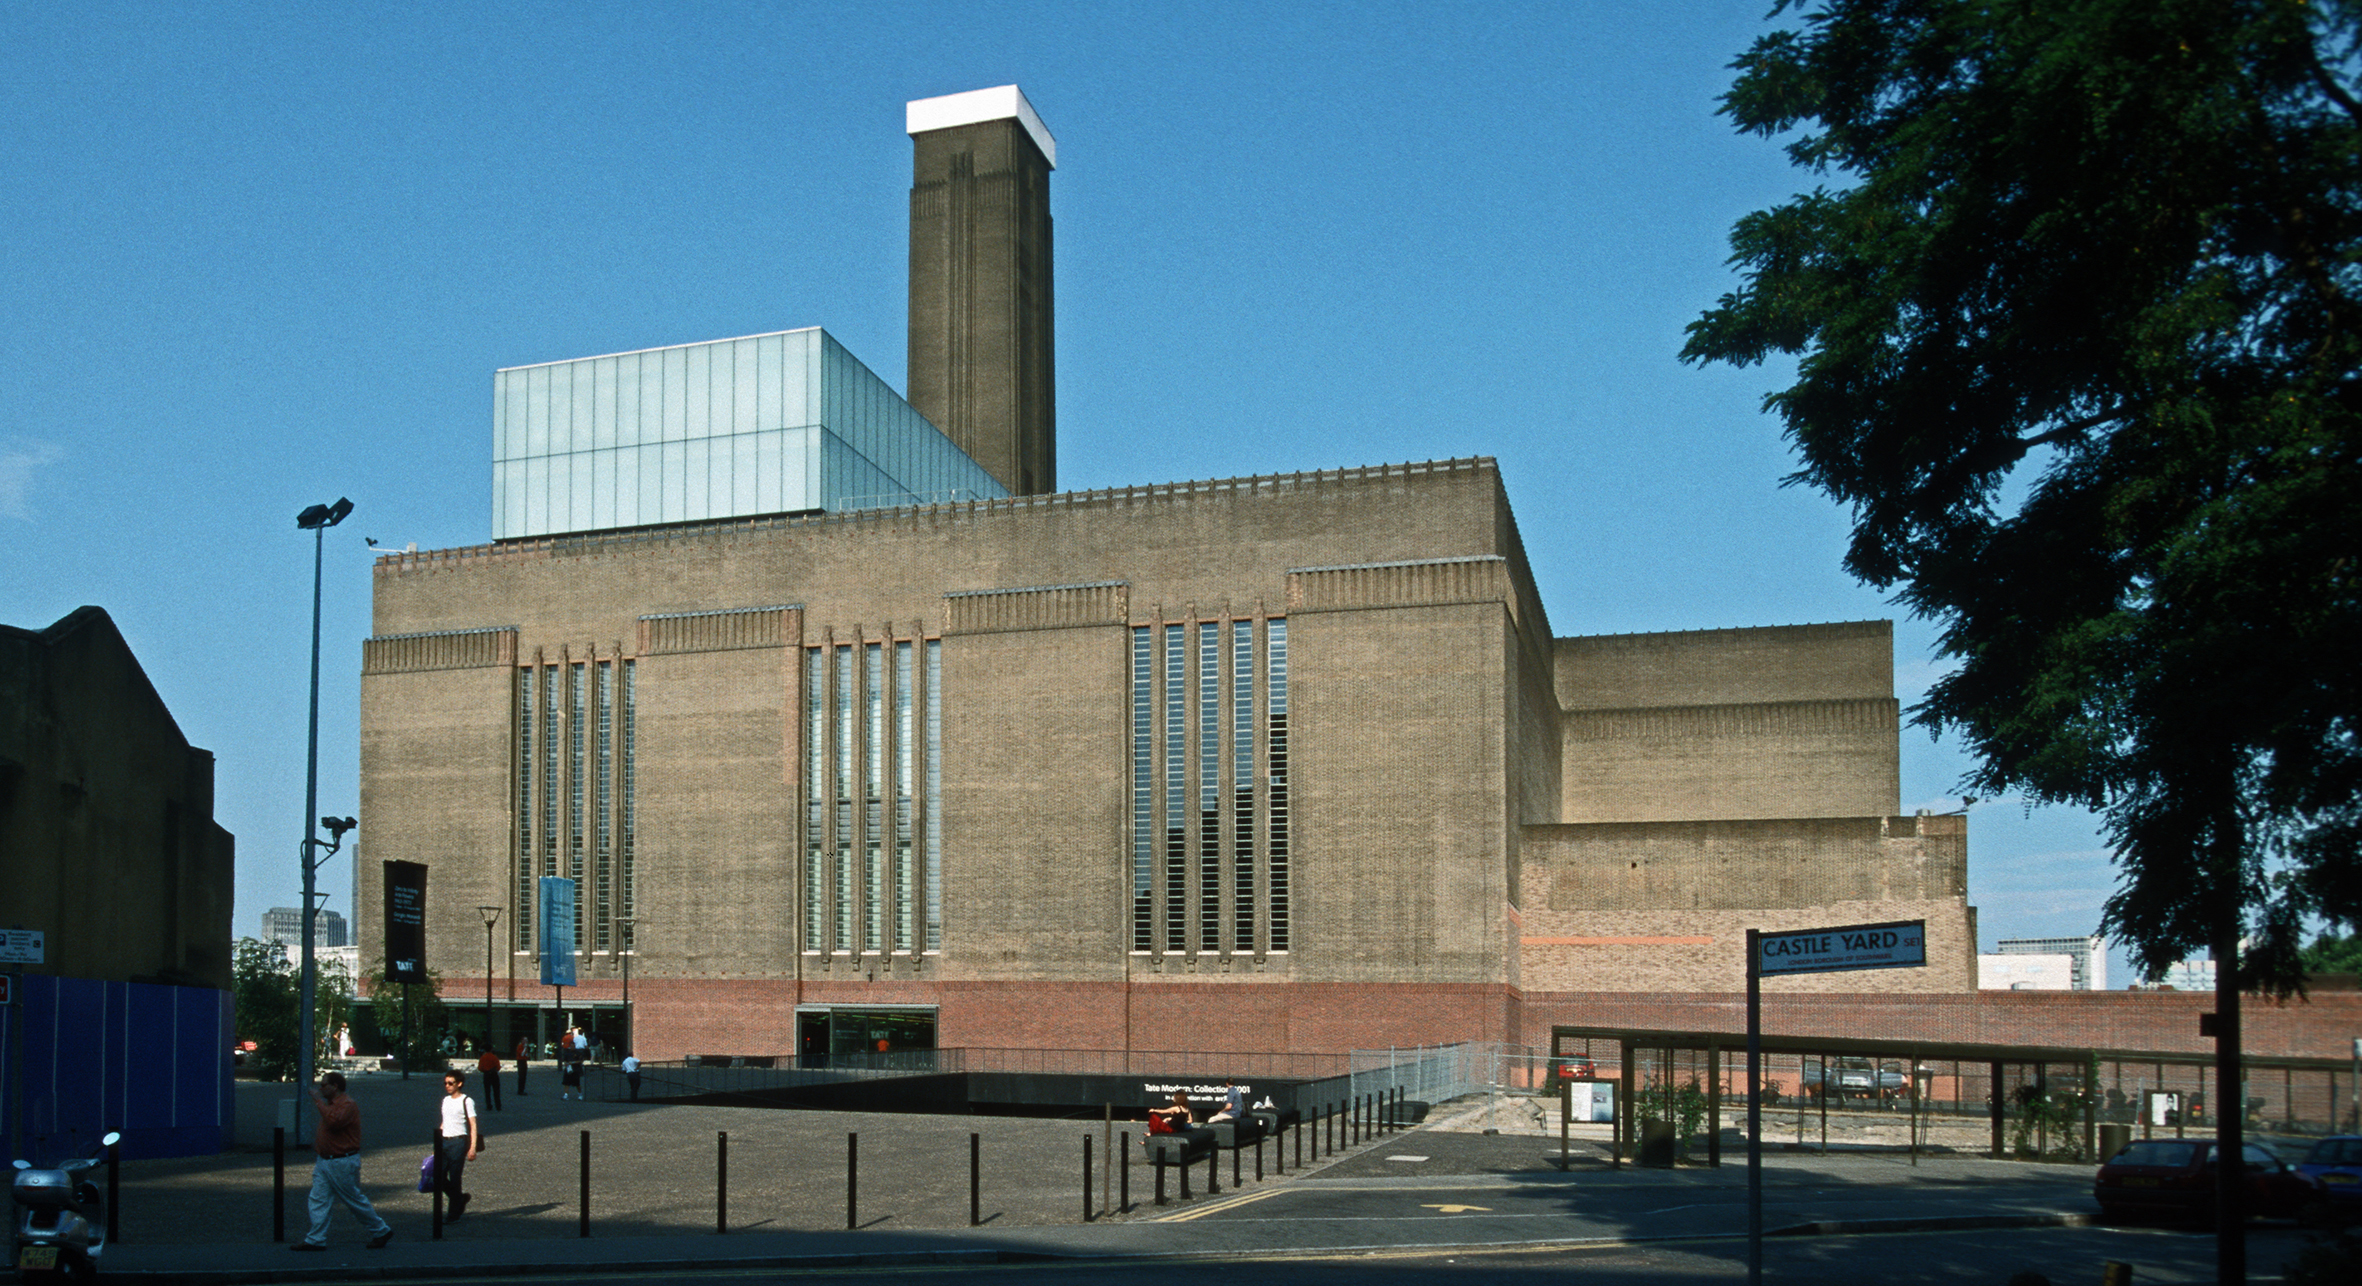 File:Tate modern london 2001 01.jpg